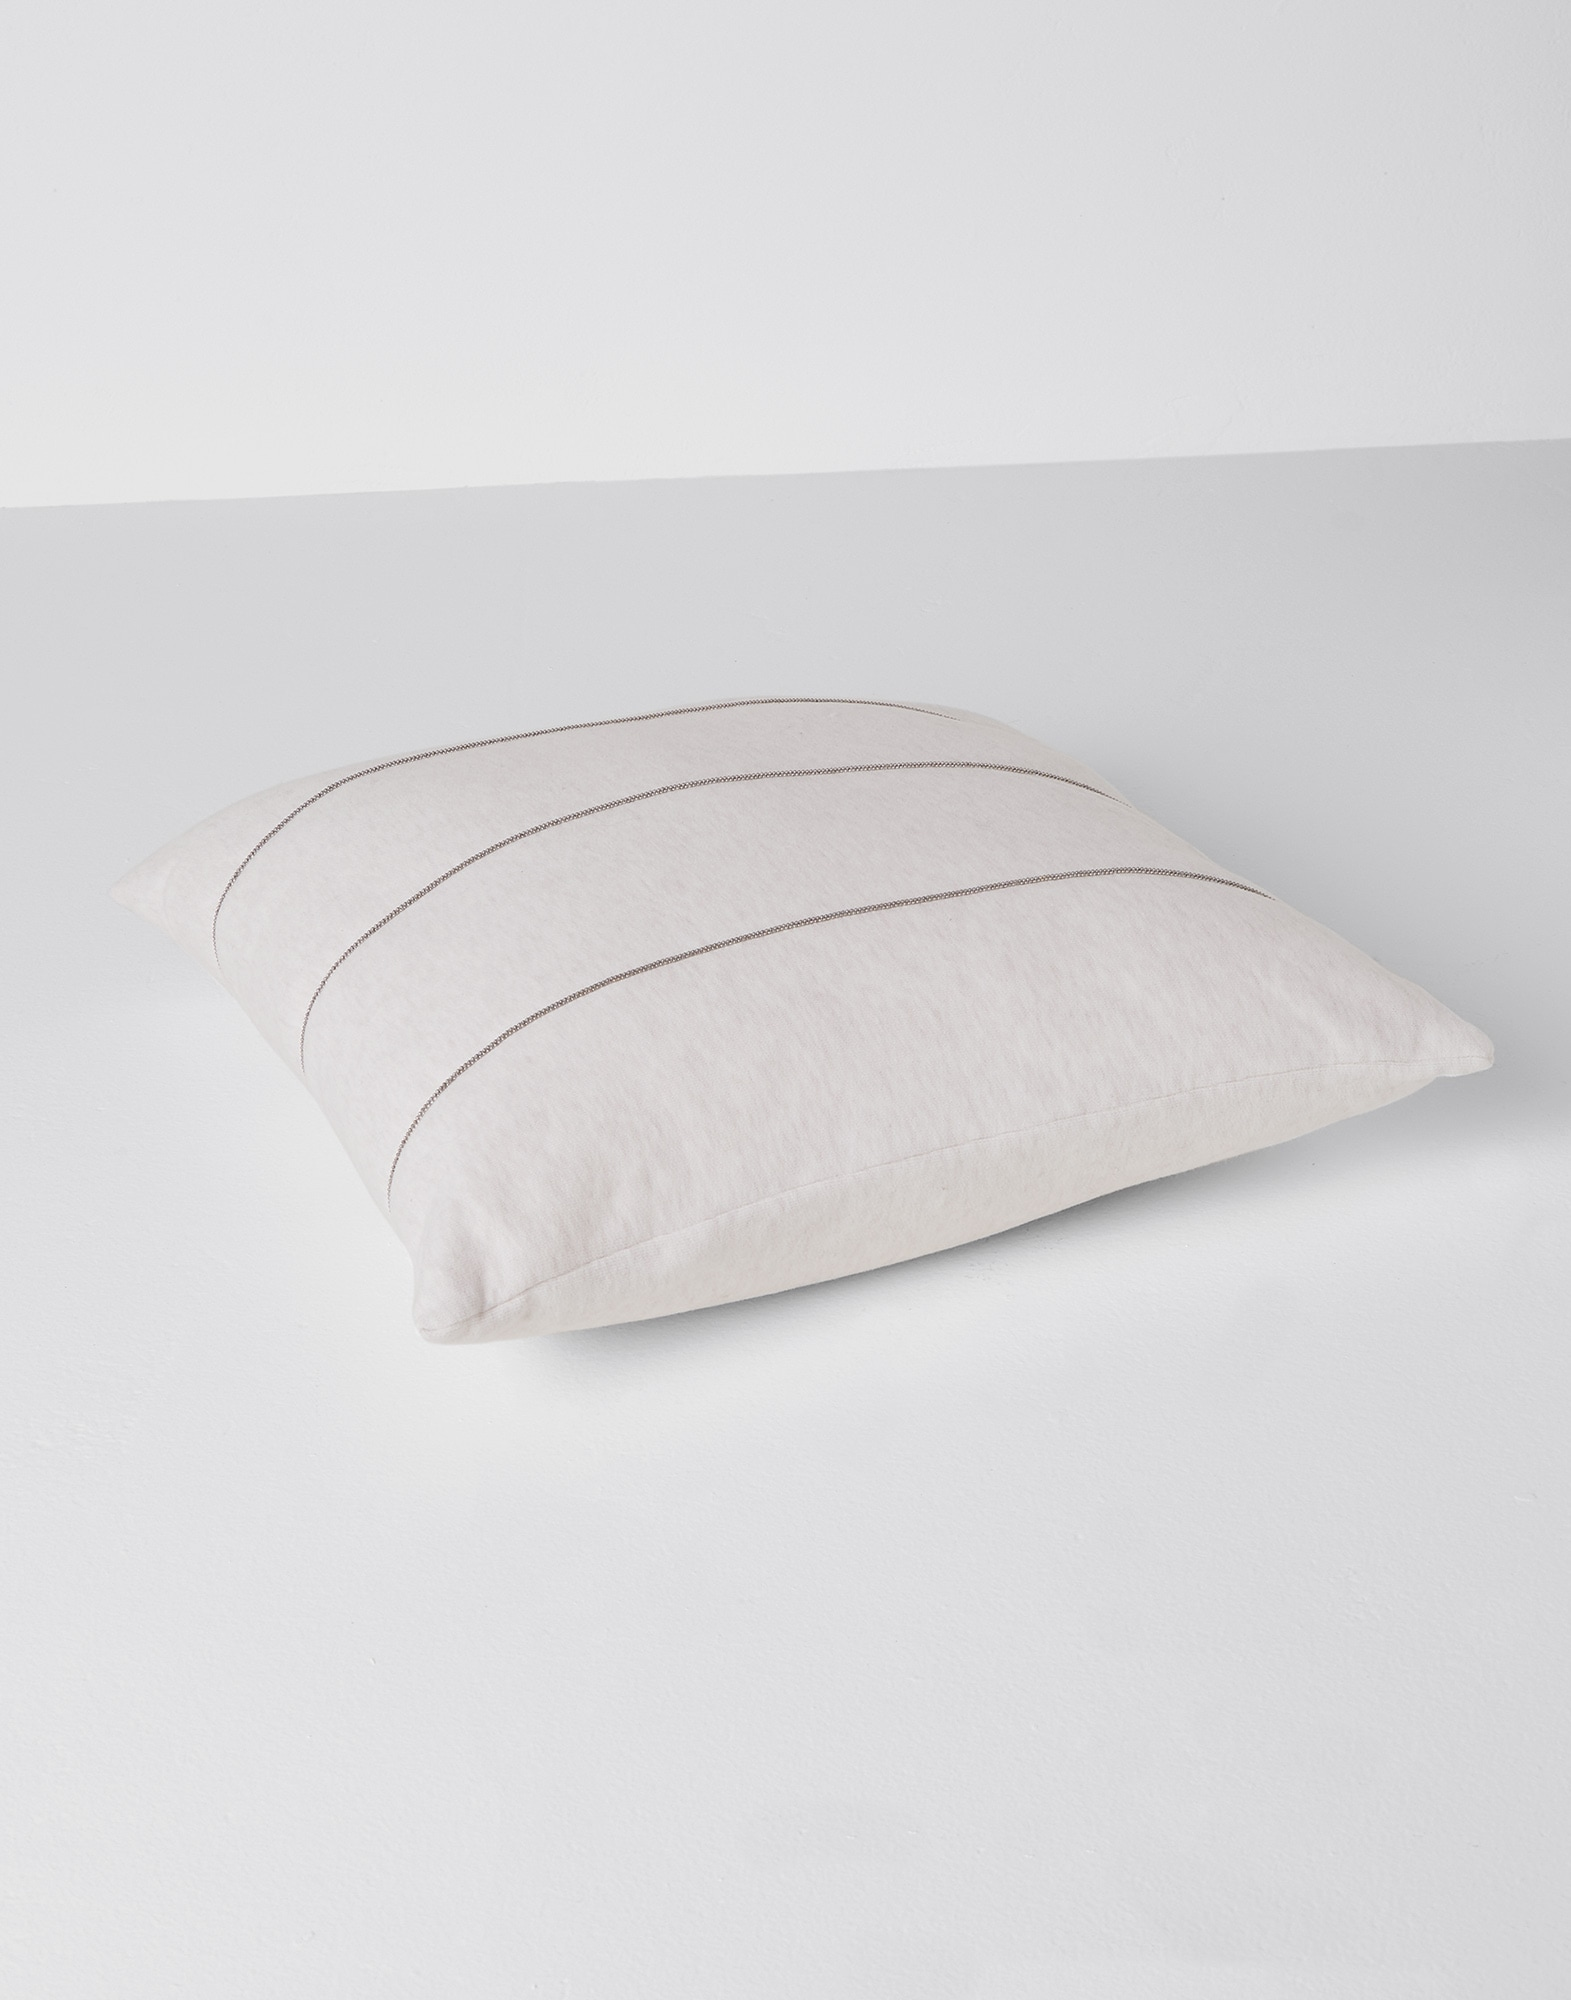 Fabric Cushions Oat Lifestyle 0 - Brunello Cucinelli